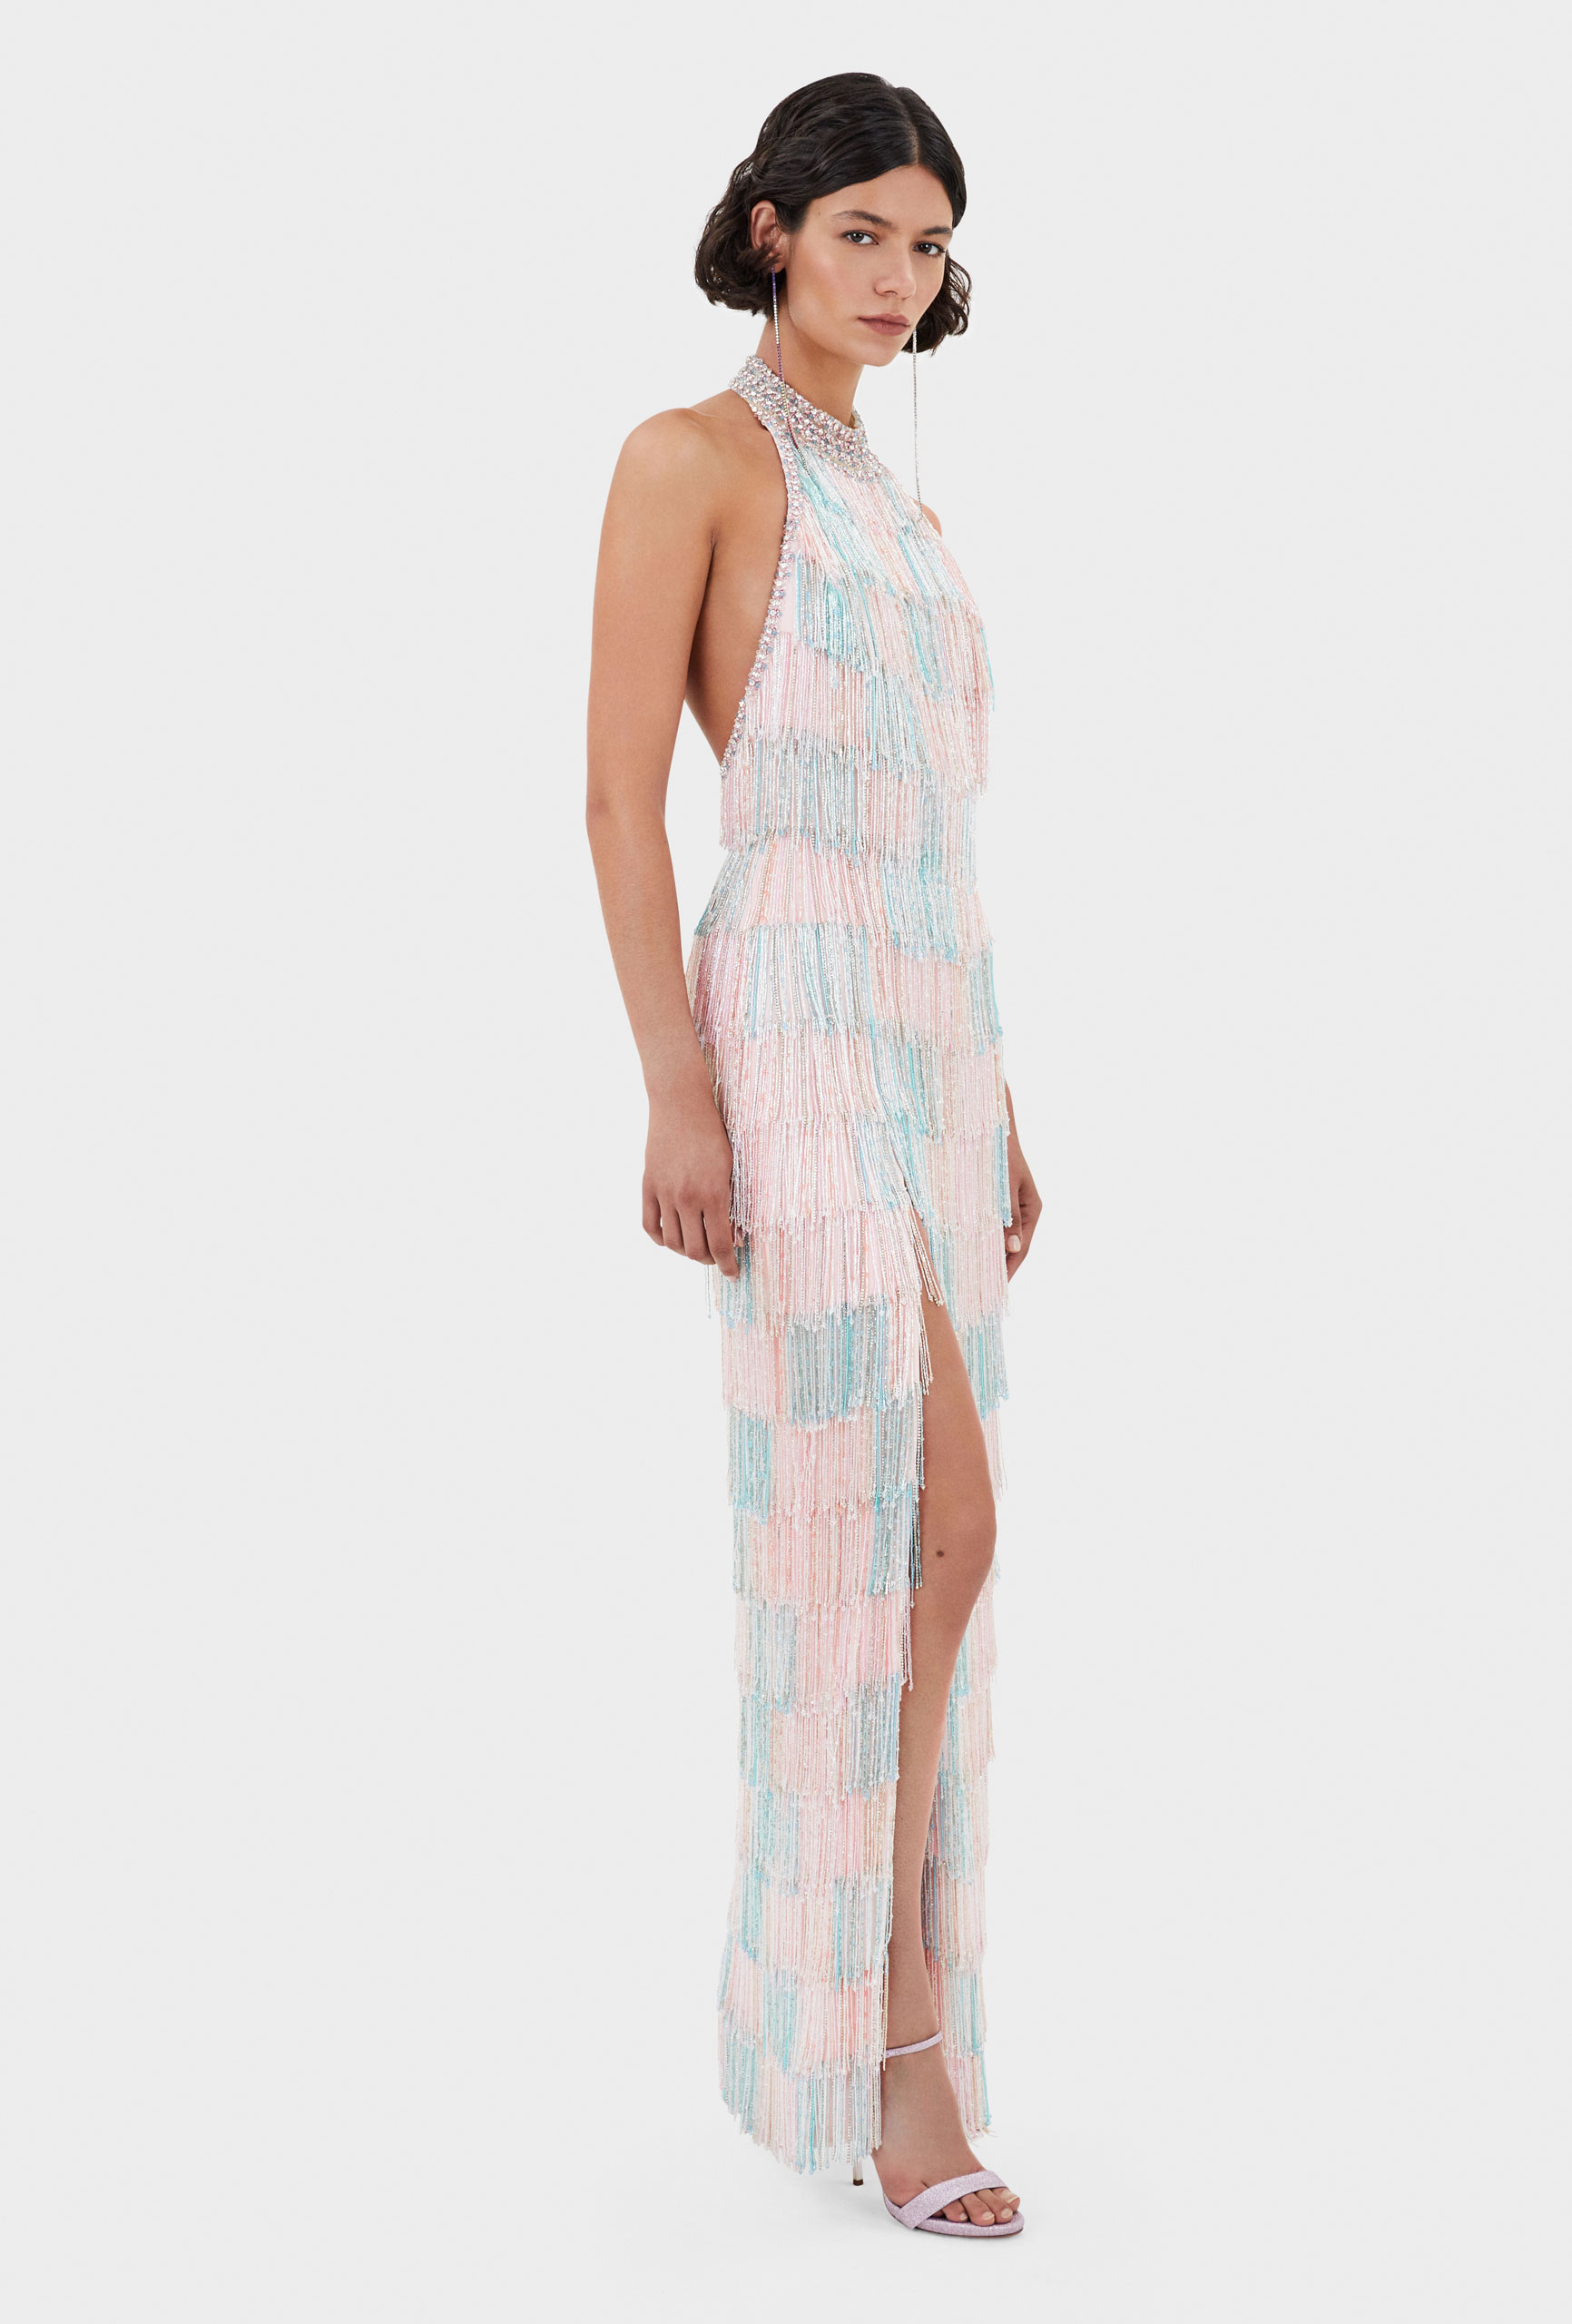 Thom Laurence Dress, Crystal fringes in Pink and blue, Italian Crepe cady, Hand embellishment, Made in London